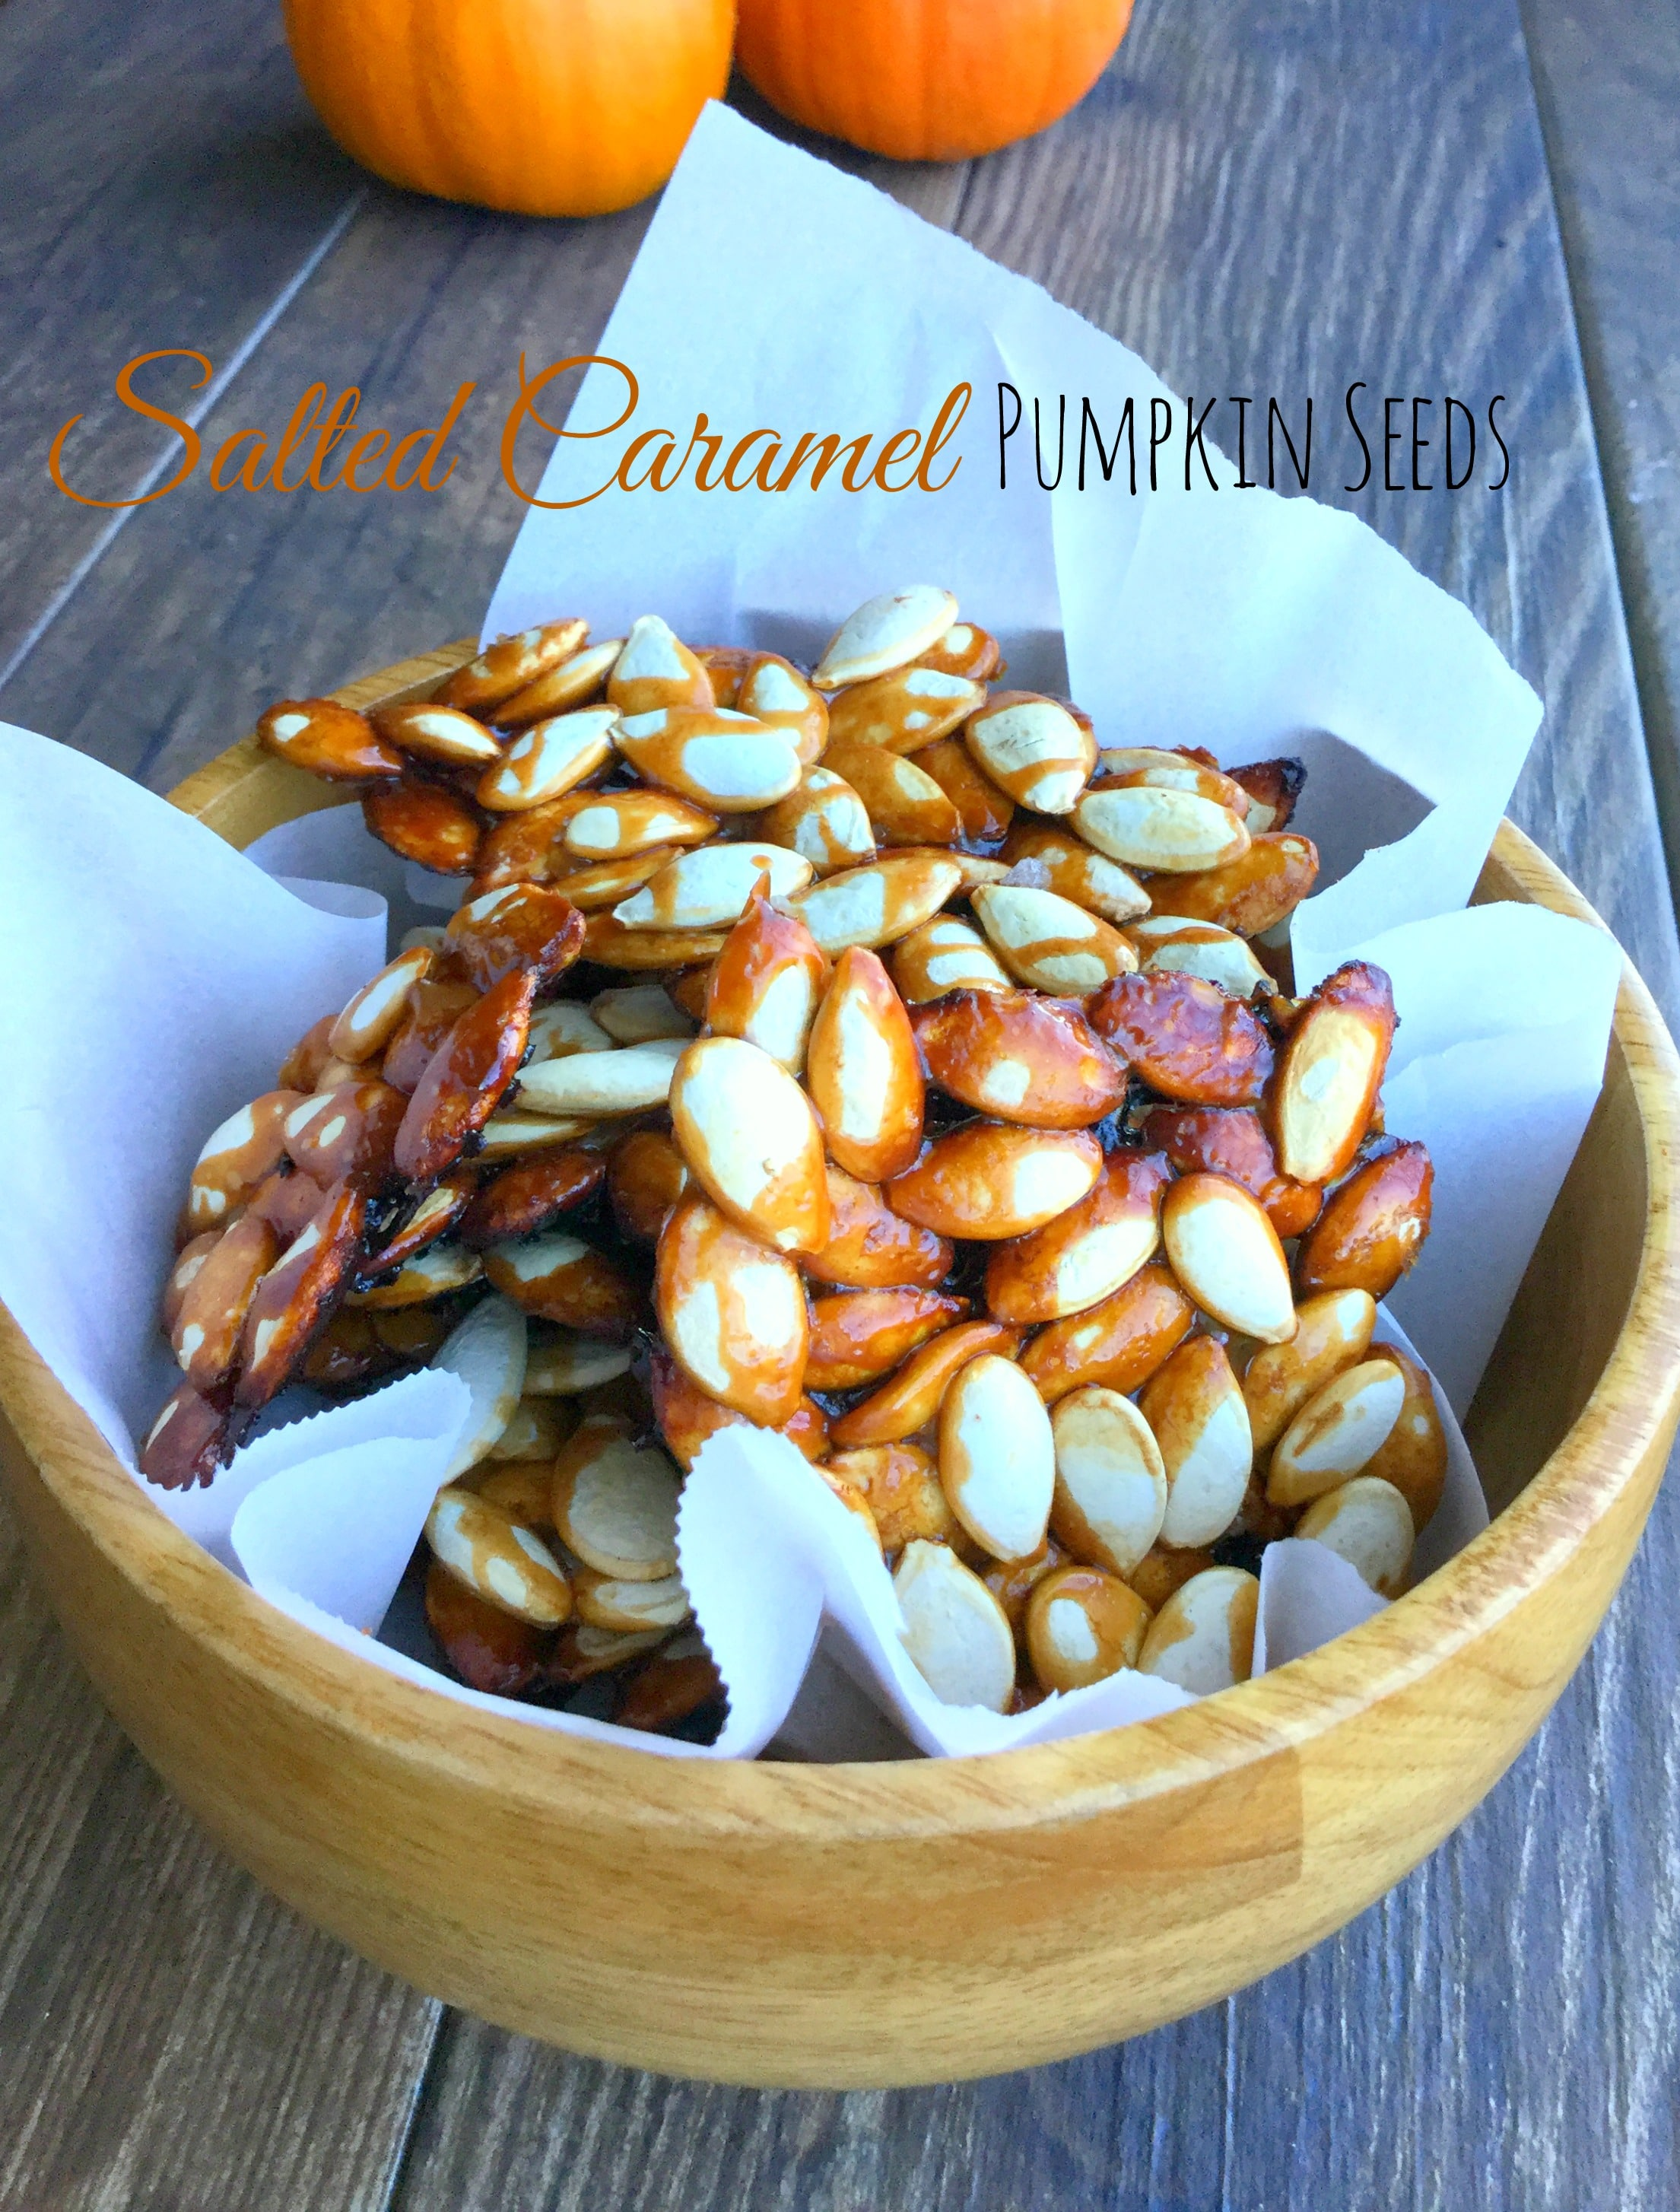 This sweet and salty pumpkin seeds recipe is a fun spin on this classic family recipe.